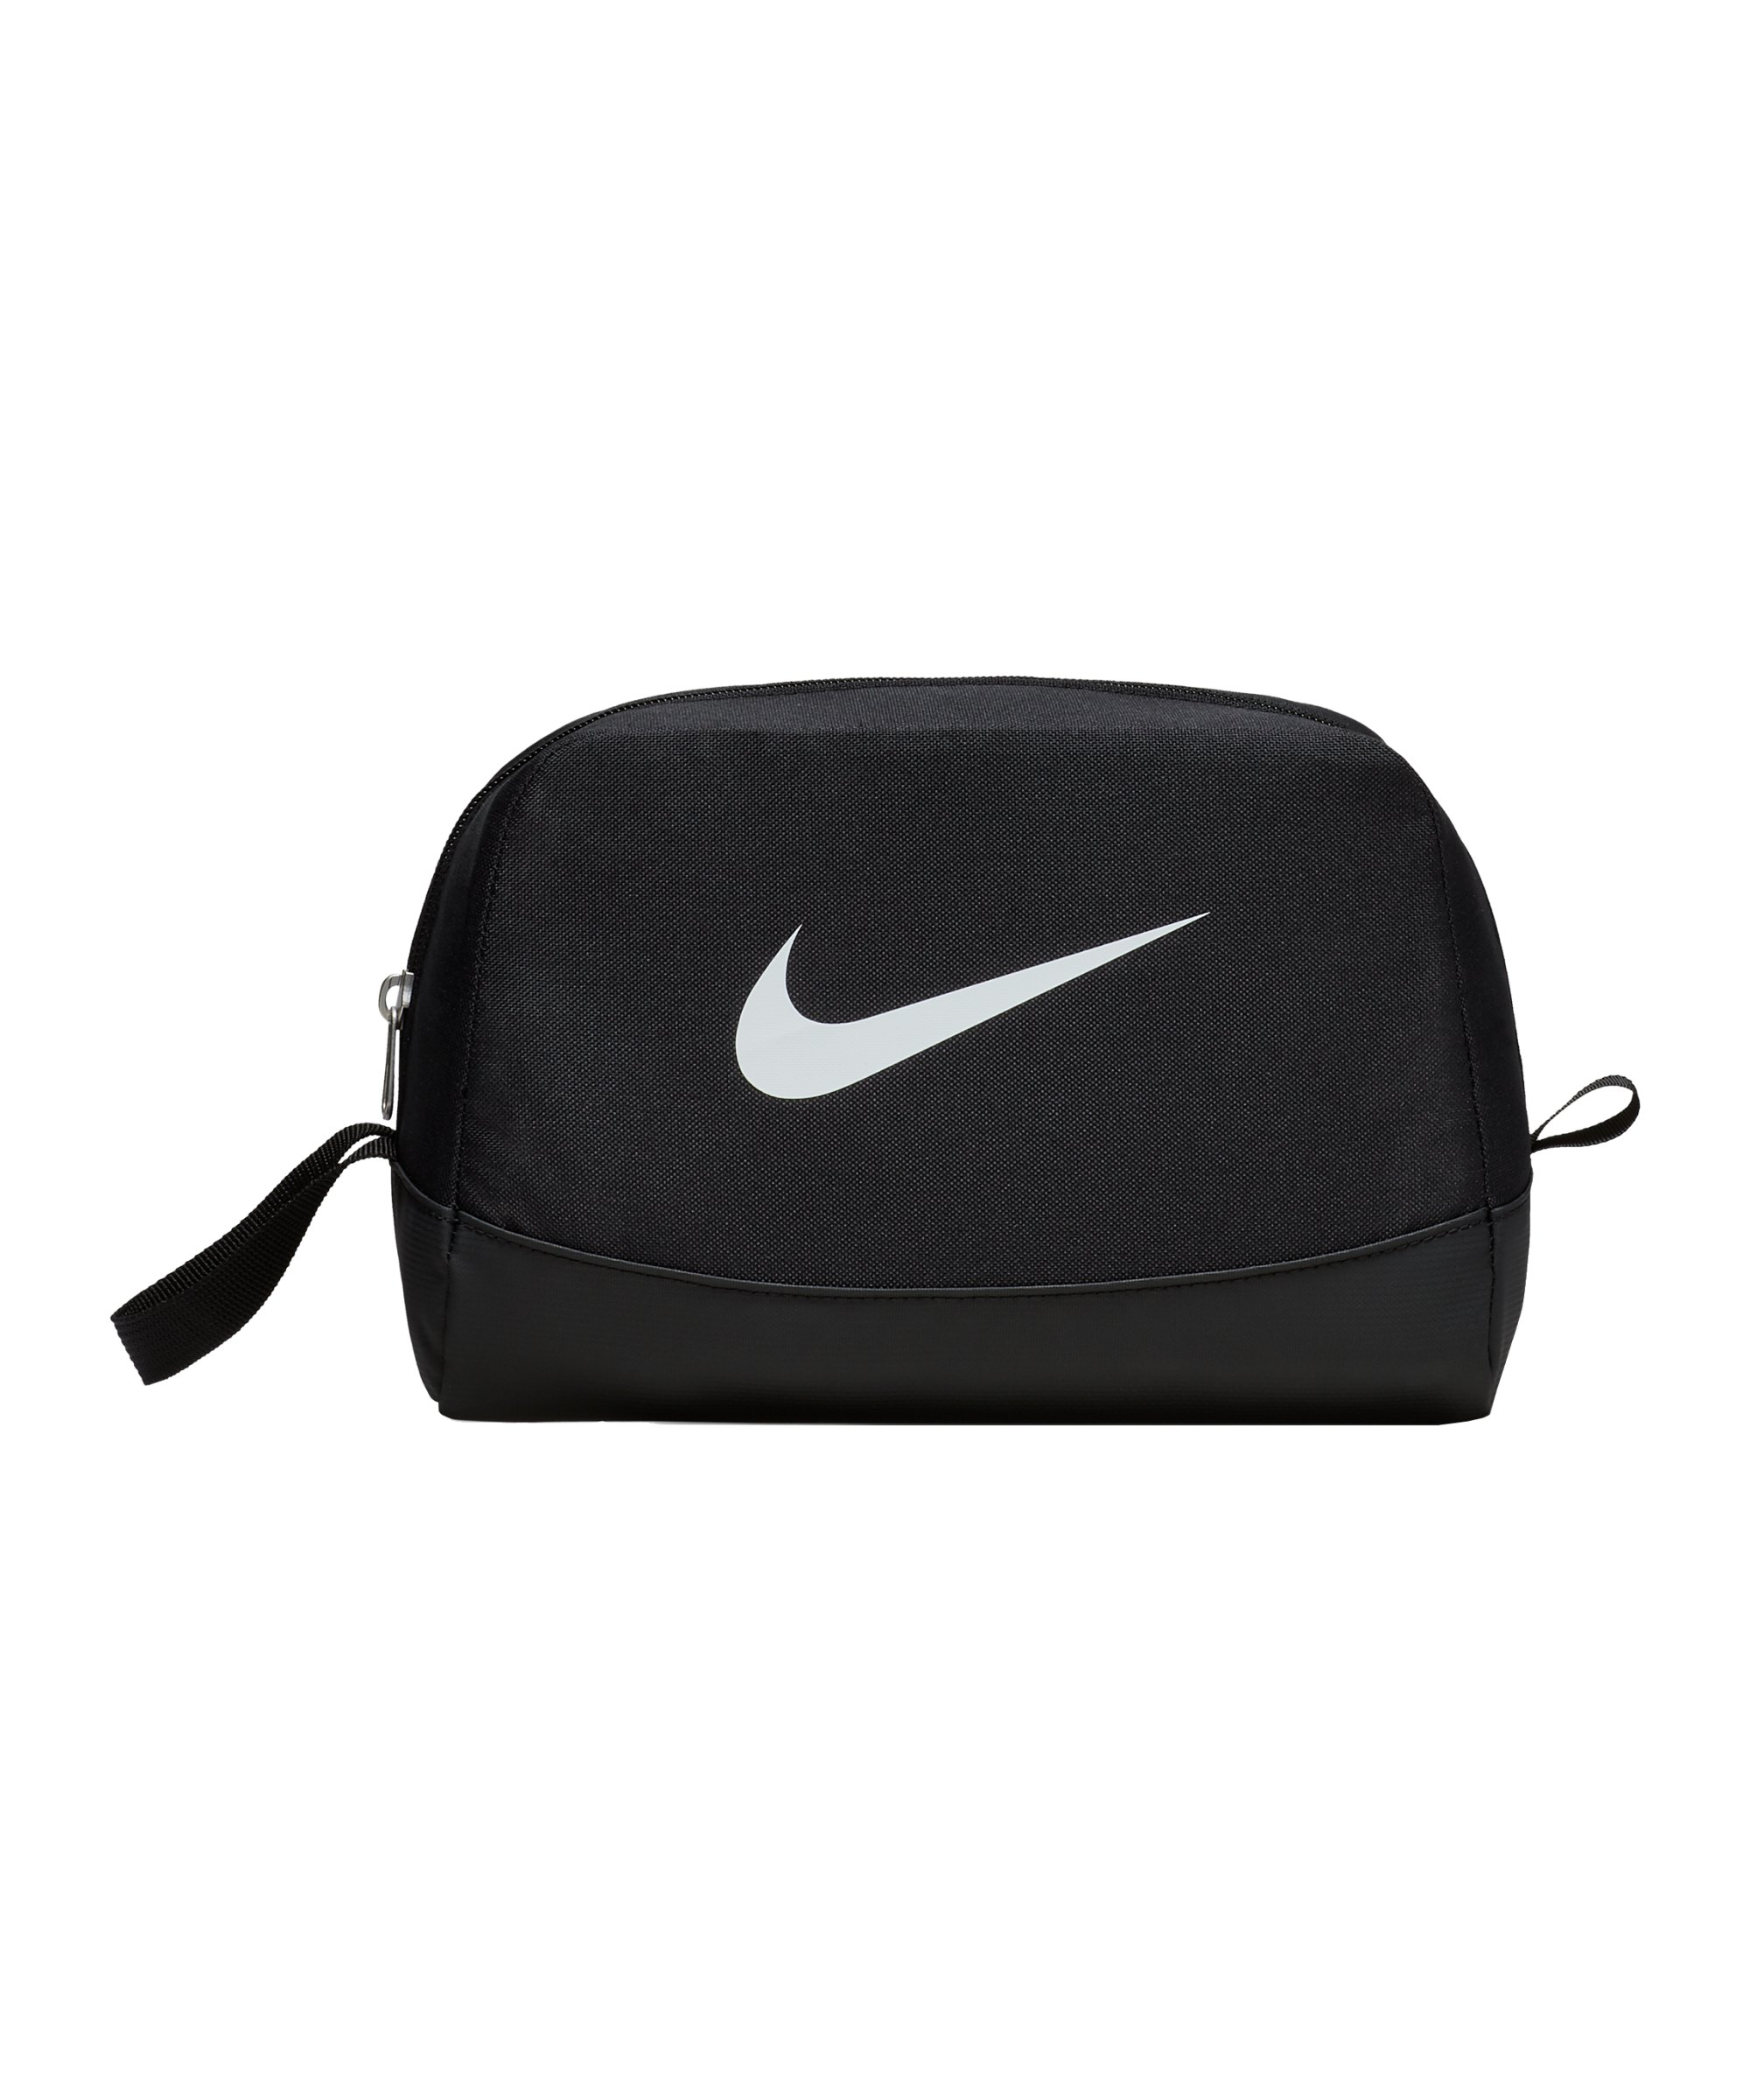 Nike Tasche Club Team Swoosh Toiletry Bag F010 - schwarz